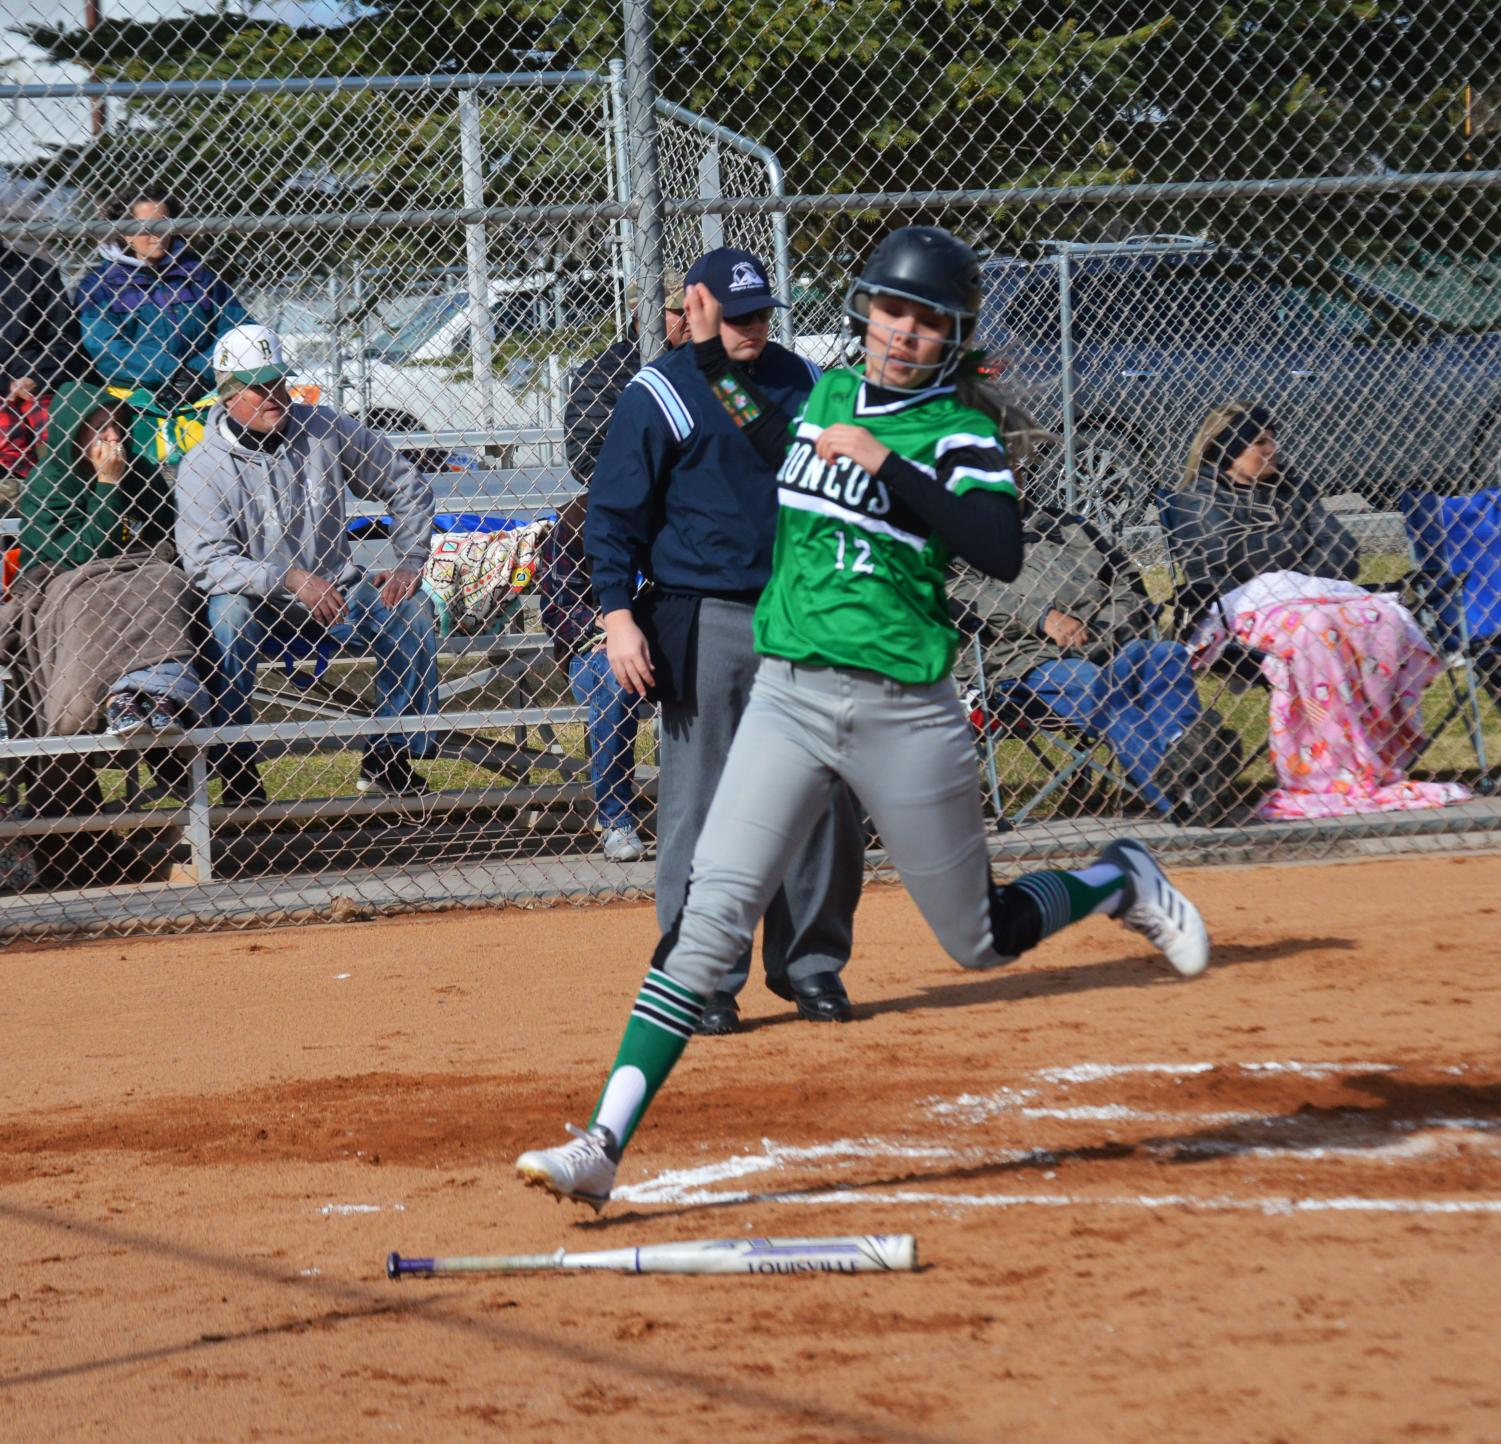 BRINGING+IT+HOME.+Demri+Wixom+%2810%29+runs+into+home+base+tying+the+score.+